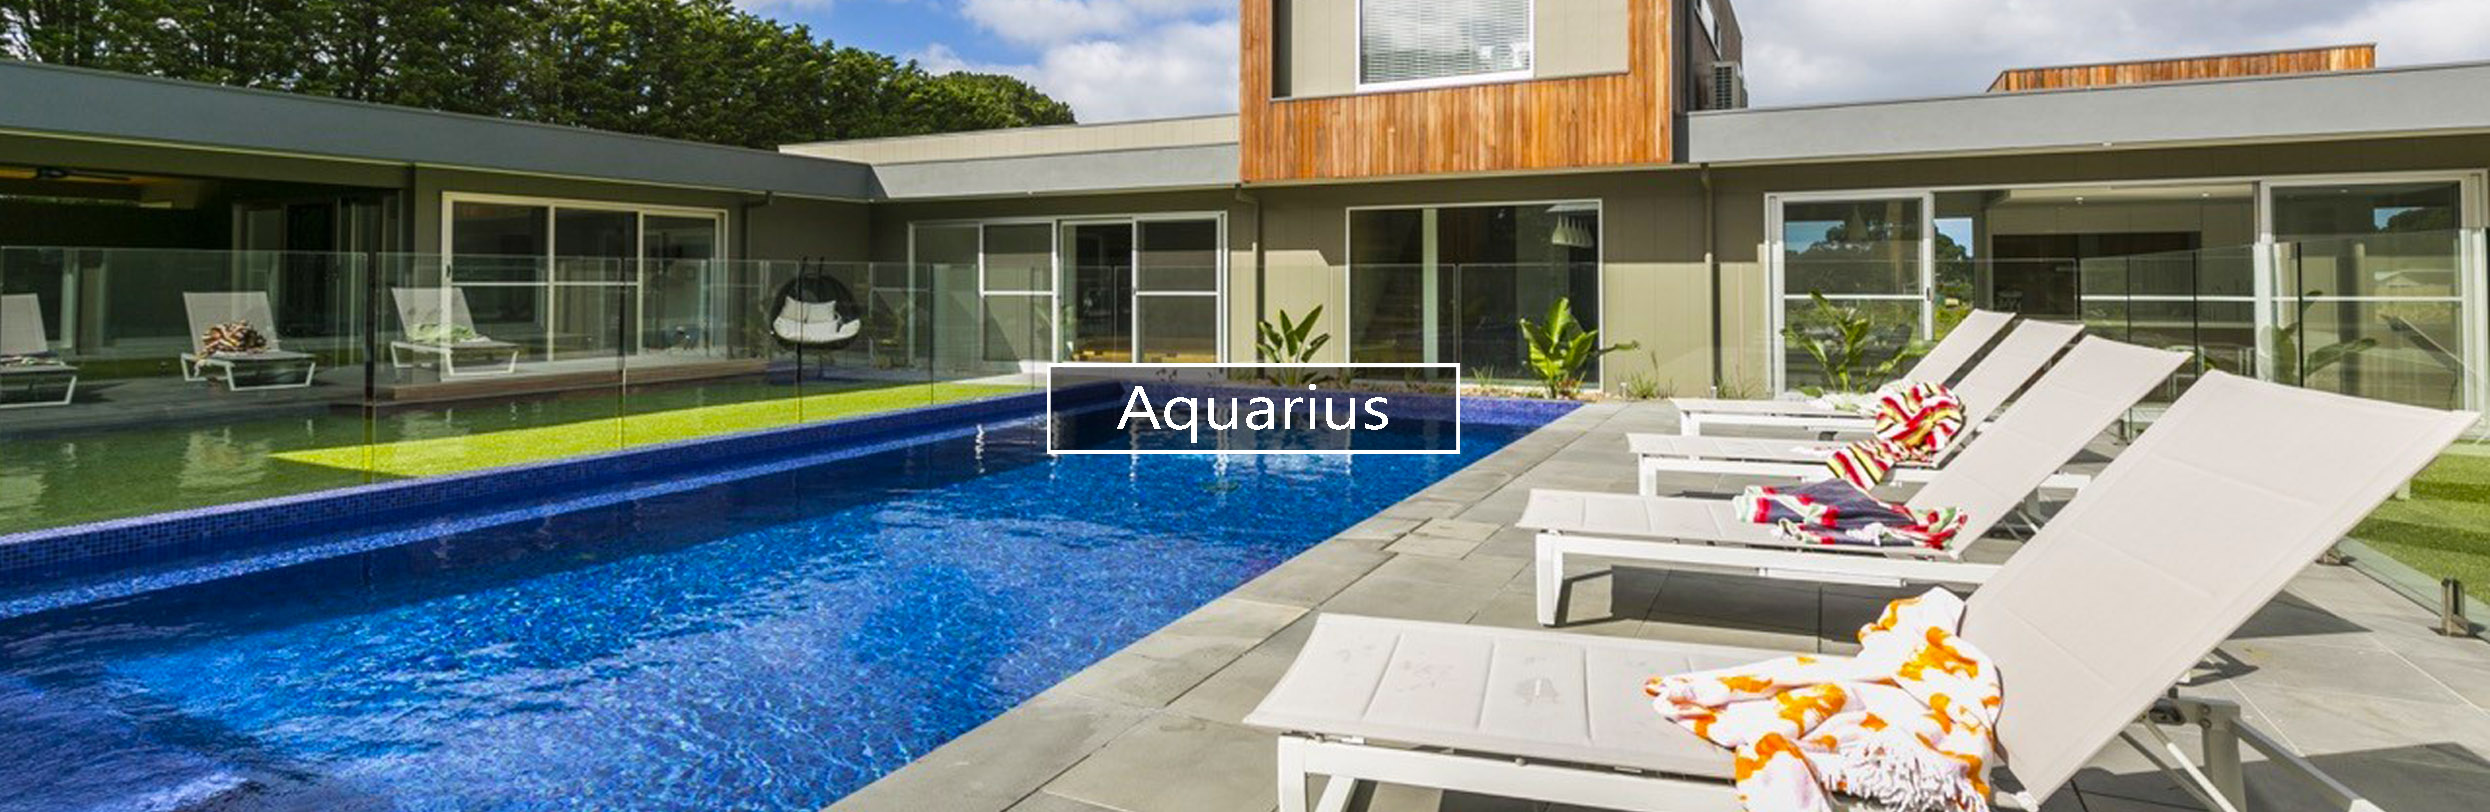 Aquarius - Kiama Pools Swimming Pool Project